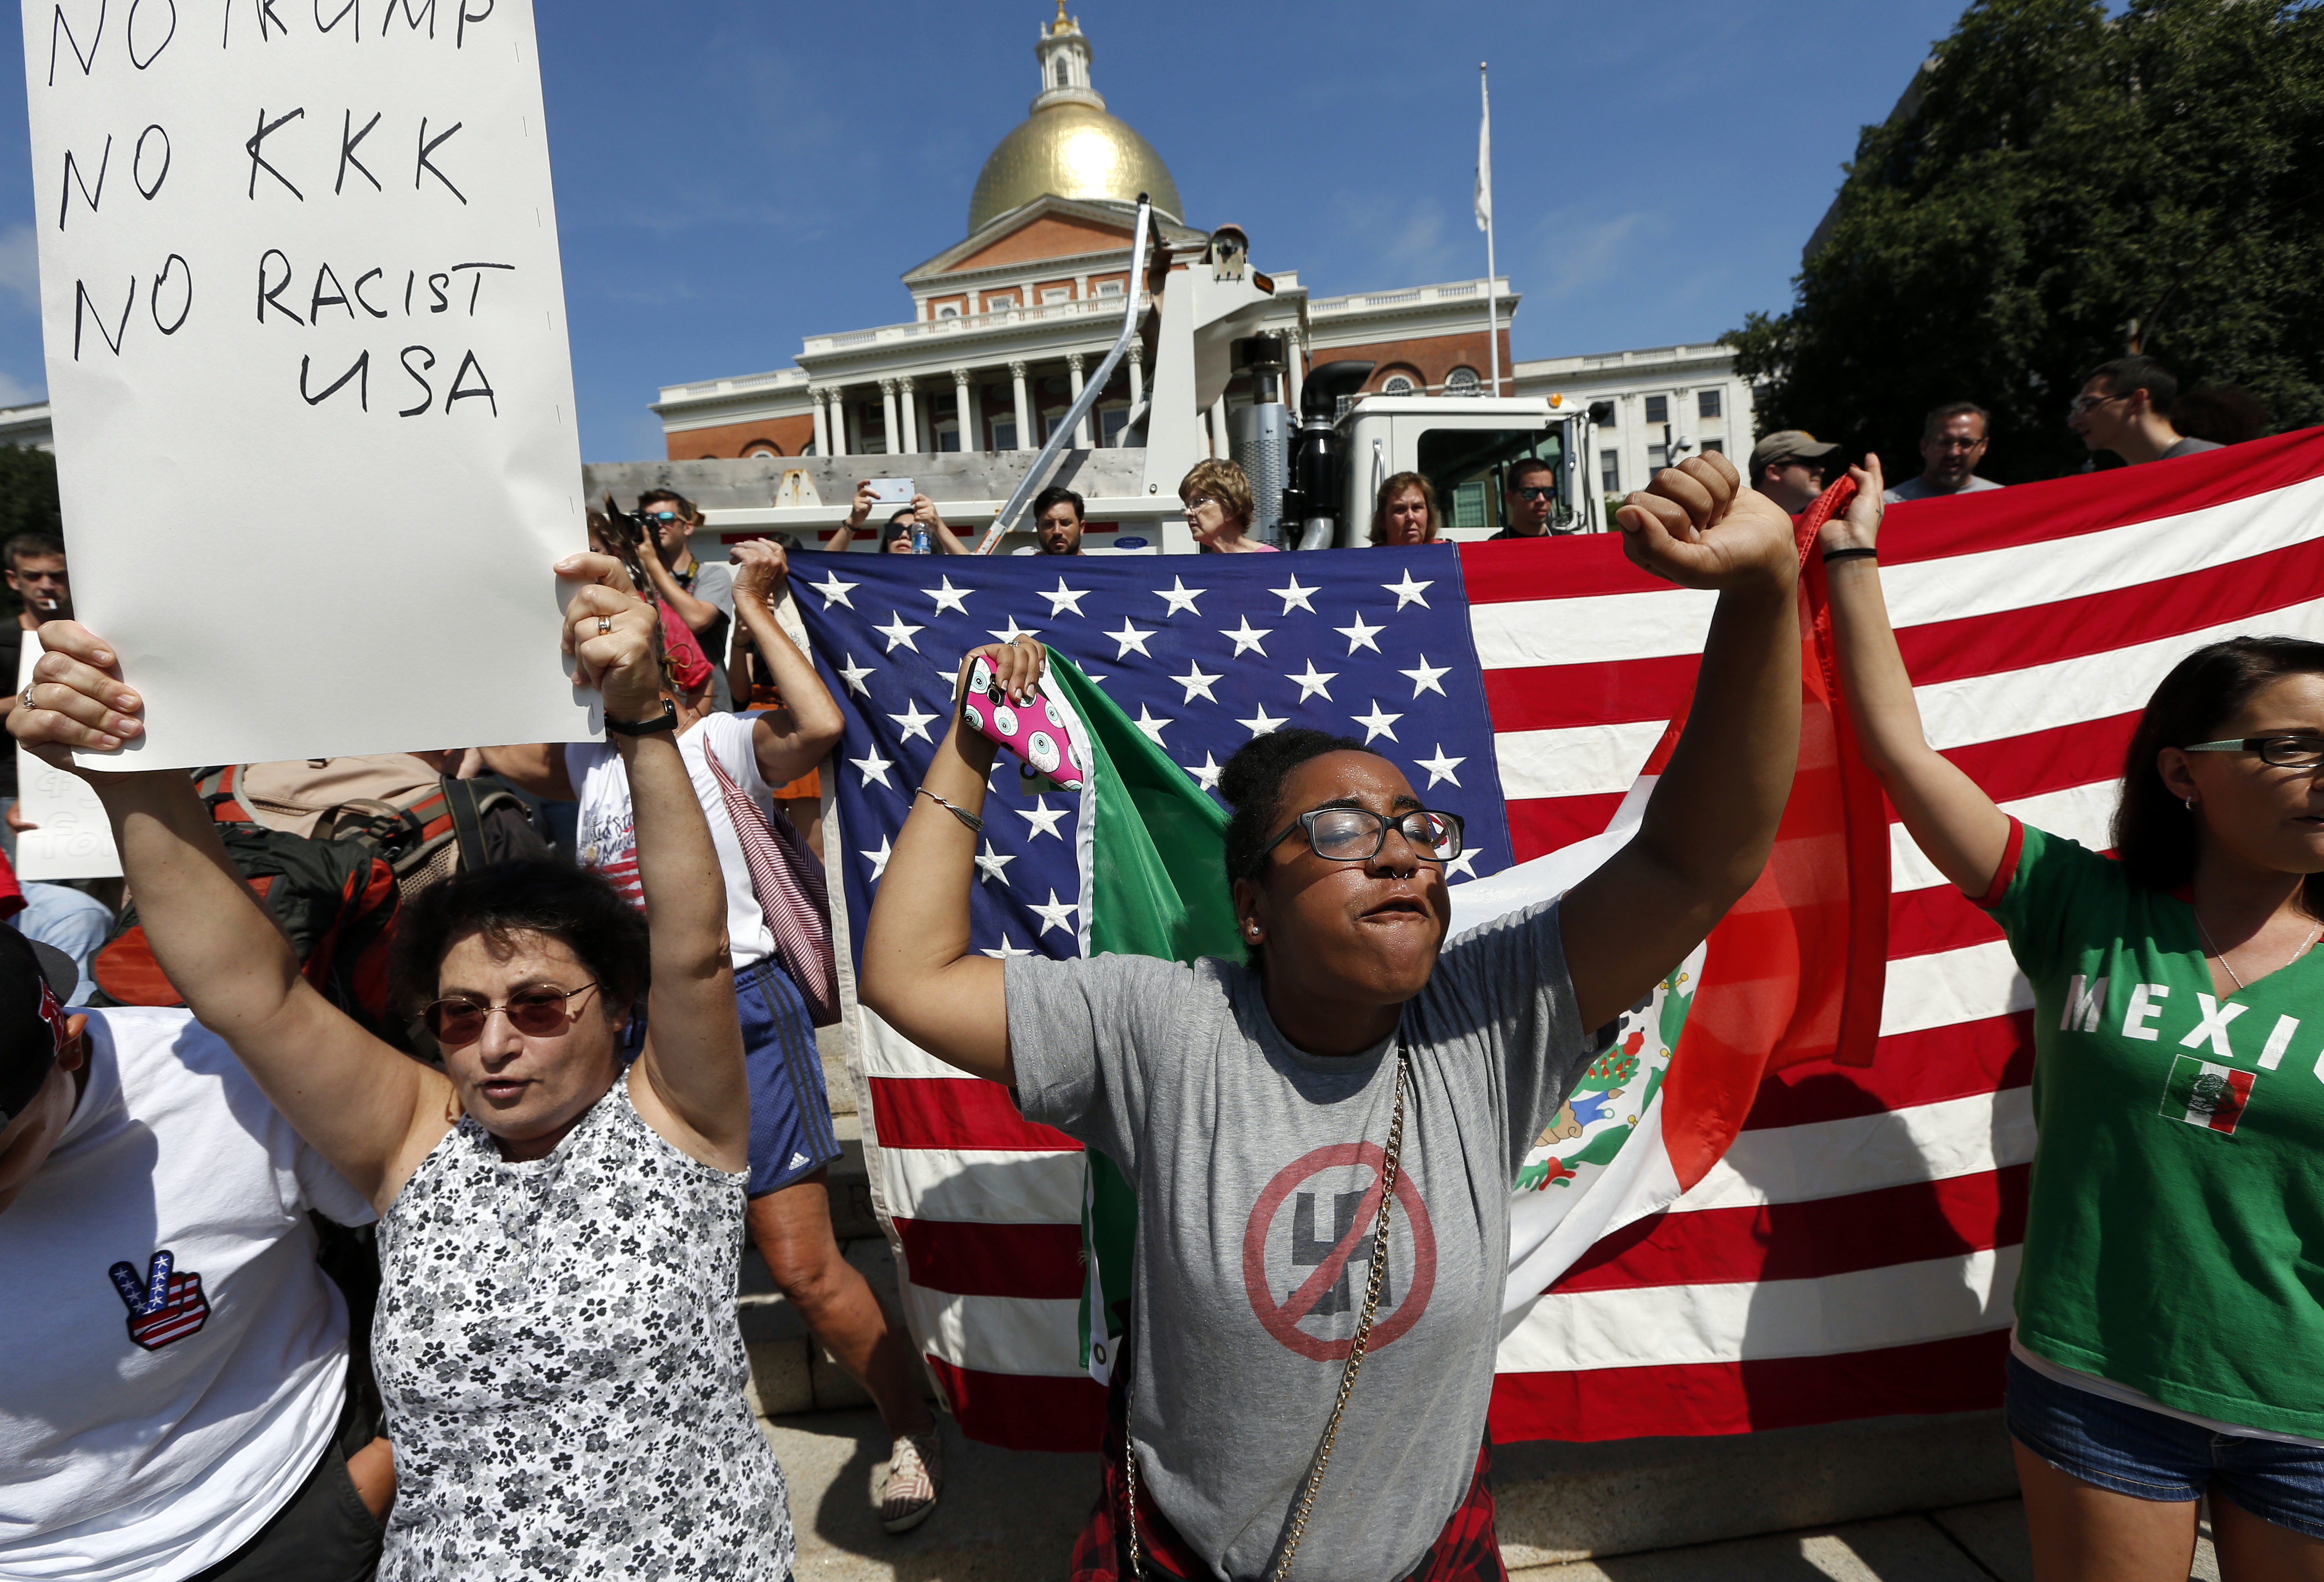 Counter-protesters at the Statehouse before a planned  Free Speech  rally by conservative organizers begins on the adjacent Boston Common on Aug. 19, 2017.